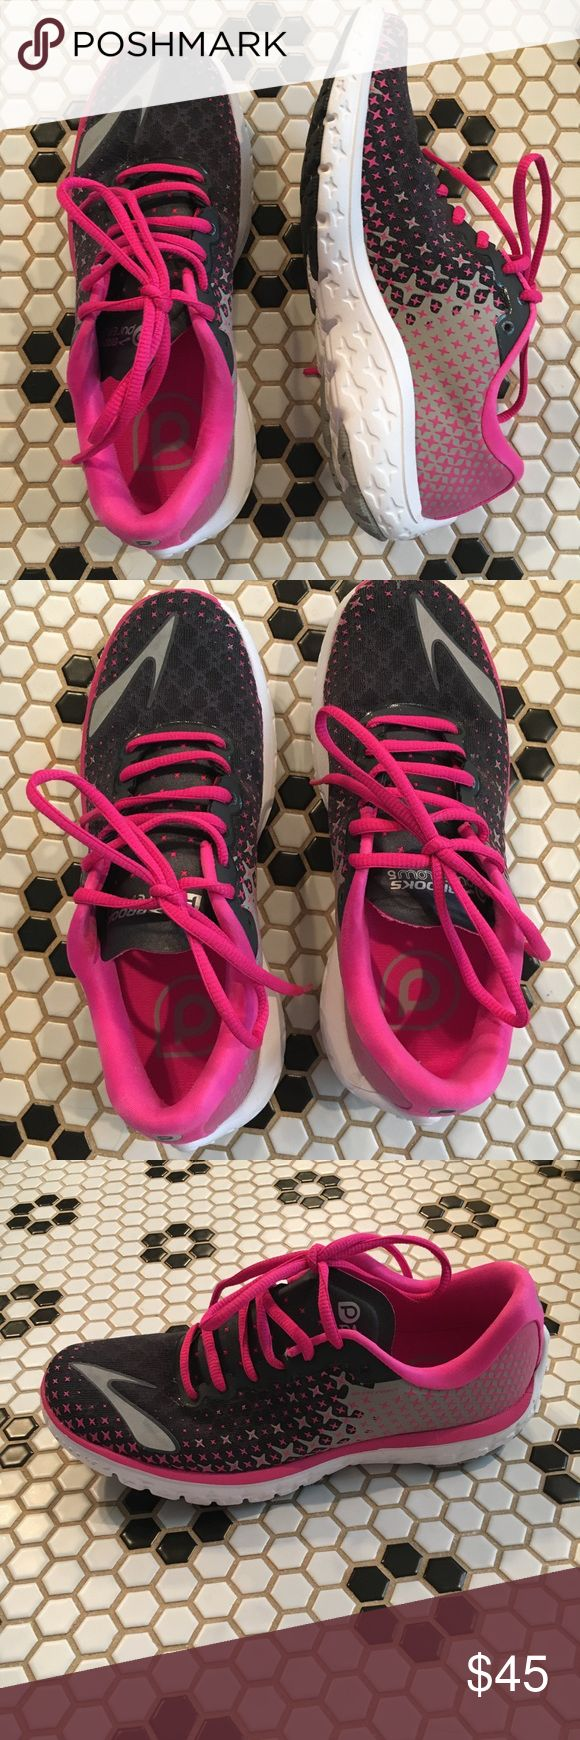 Women's Brooks Pure Flow 5 Light, bright, clean Brooks running shoes. Worn just a few times on a treadmill. These are great, just too narrow for my feet. Brooks Shoes Sneakers